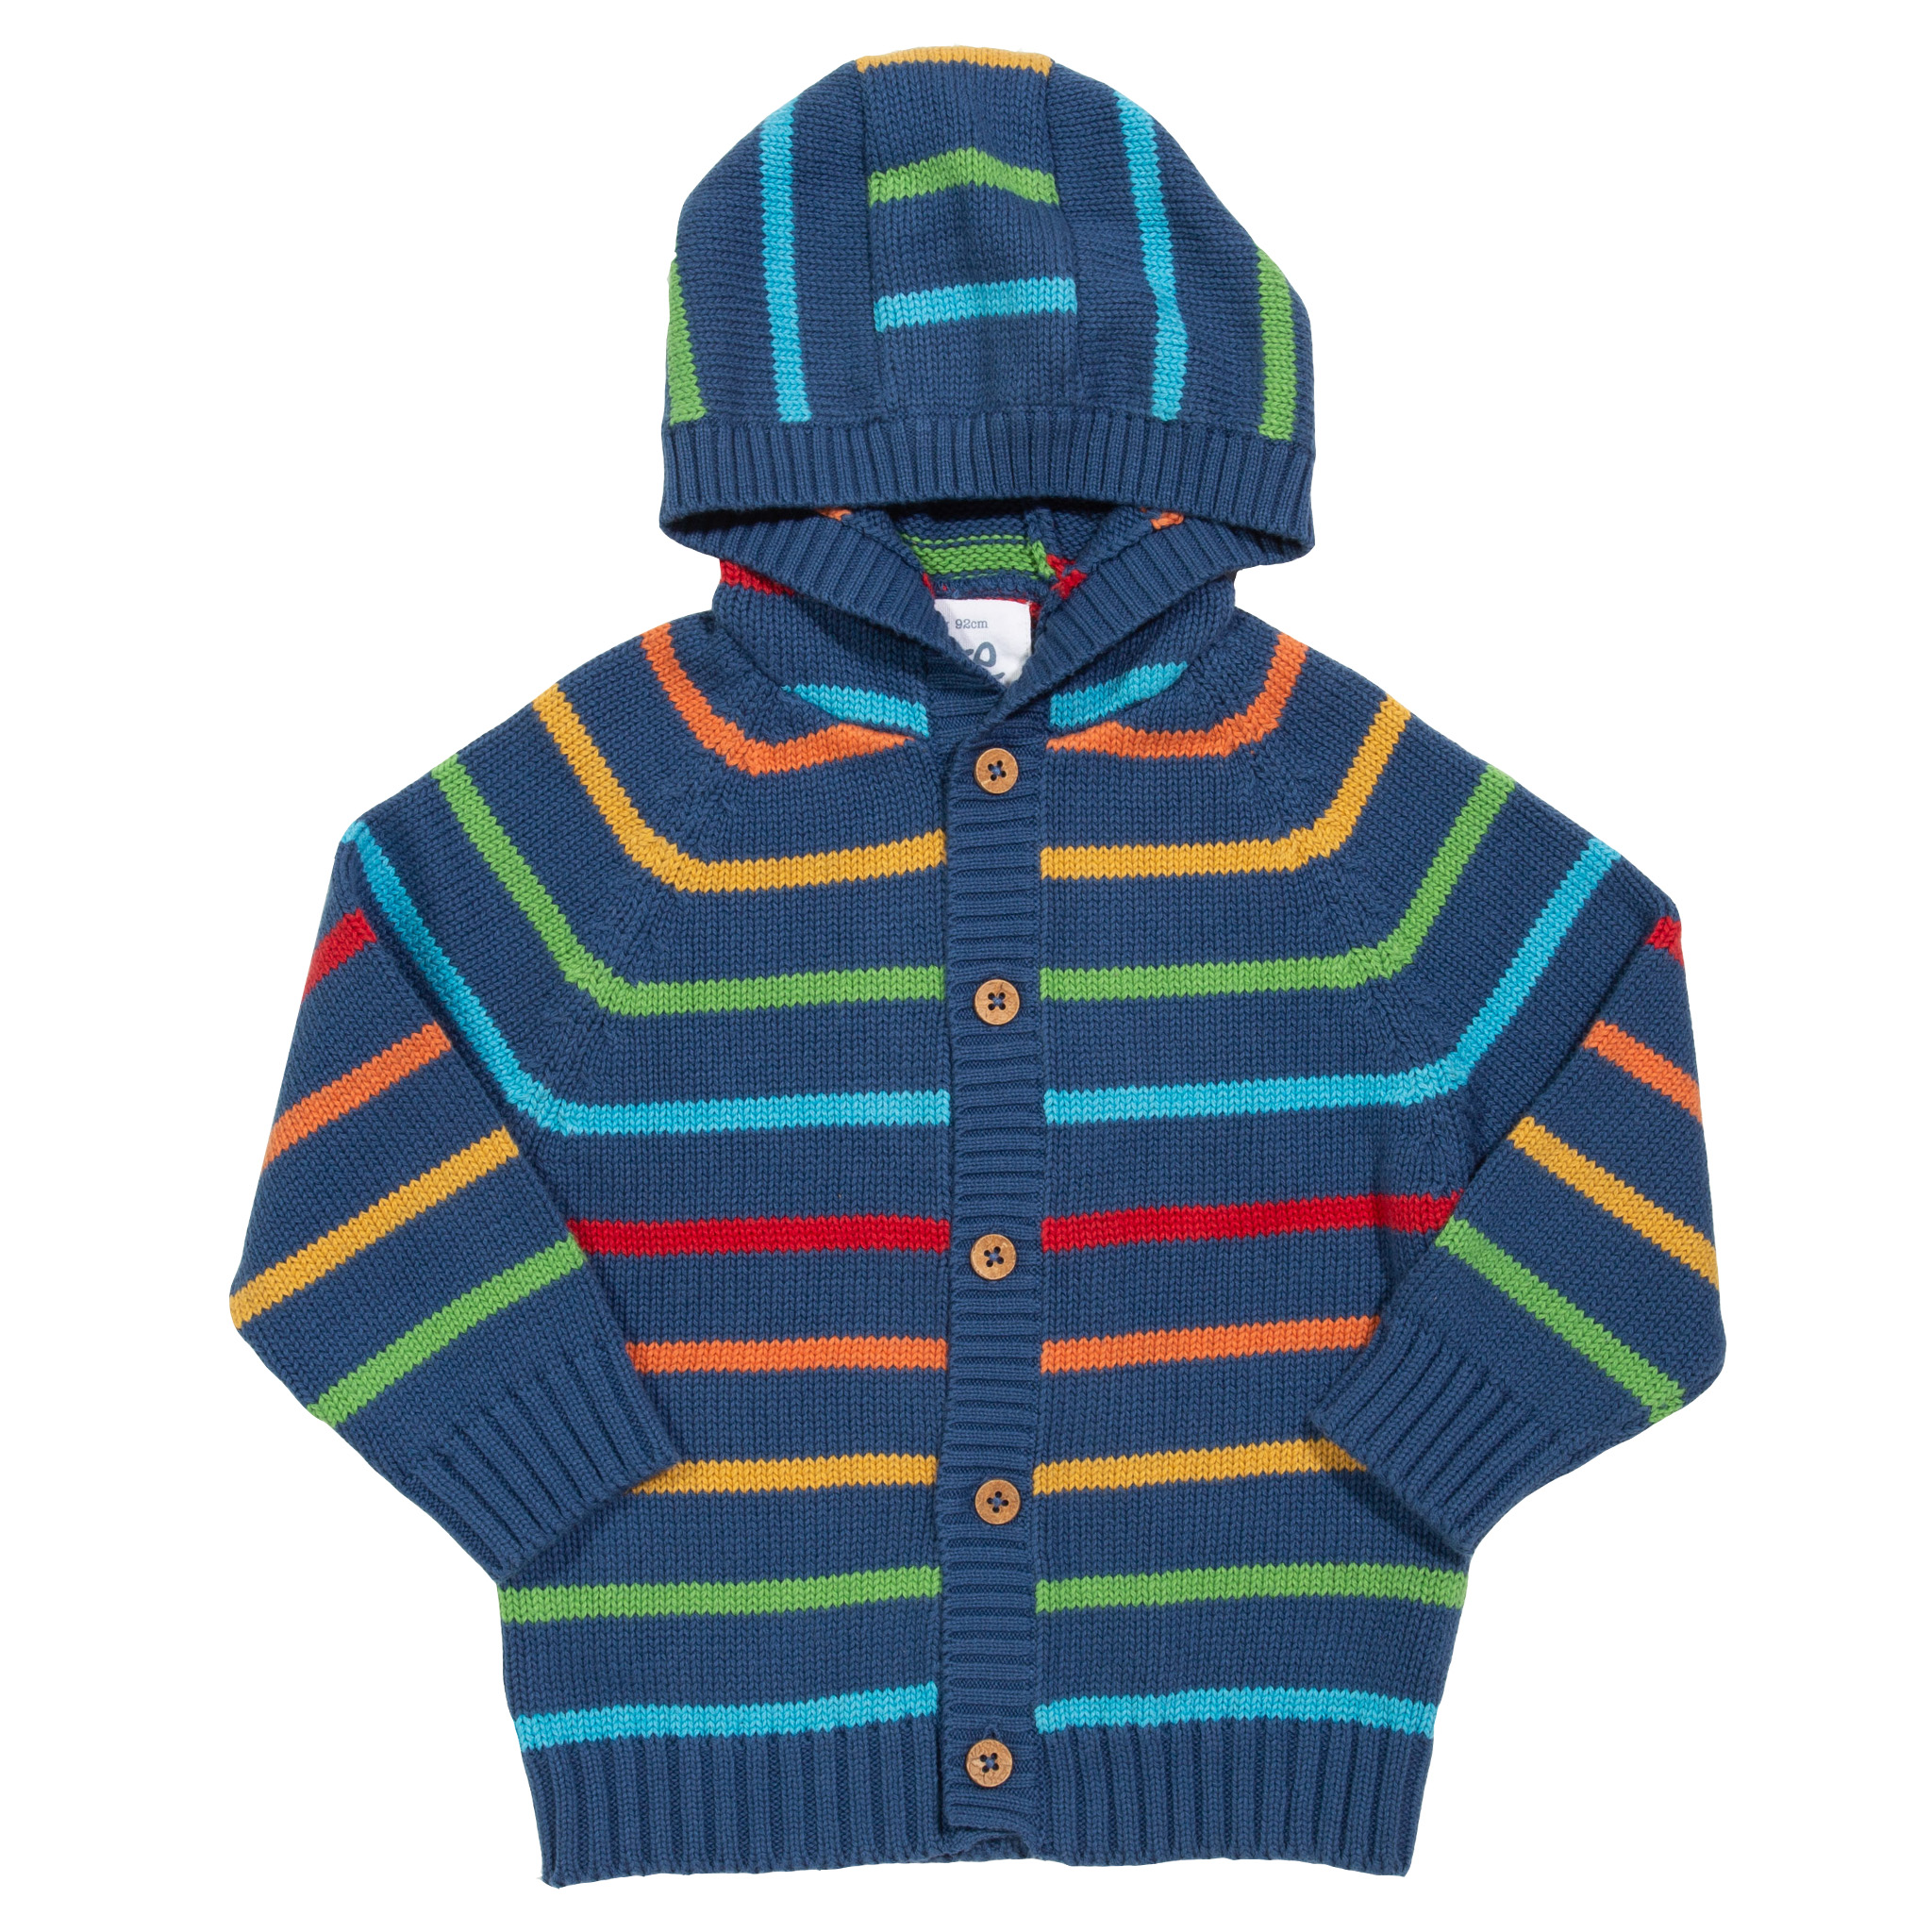 Kite Stripy Knit Hoody (was £34.00)